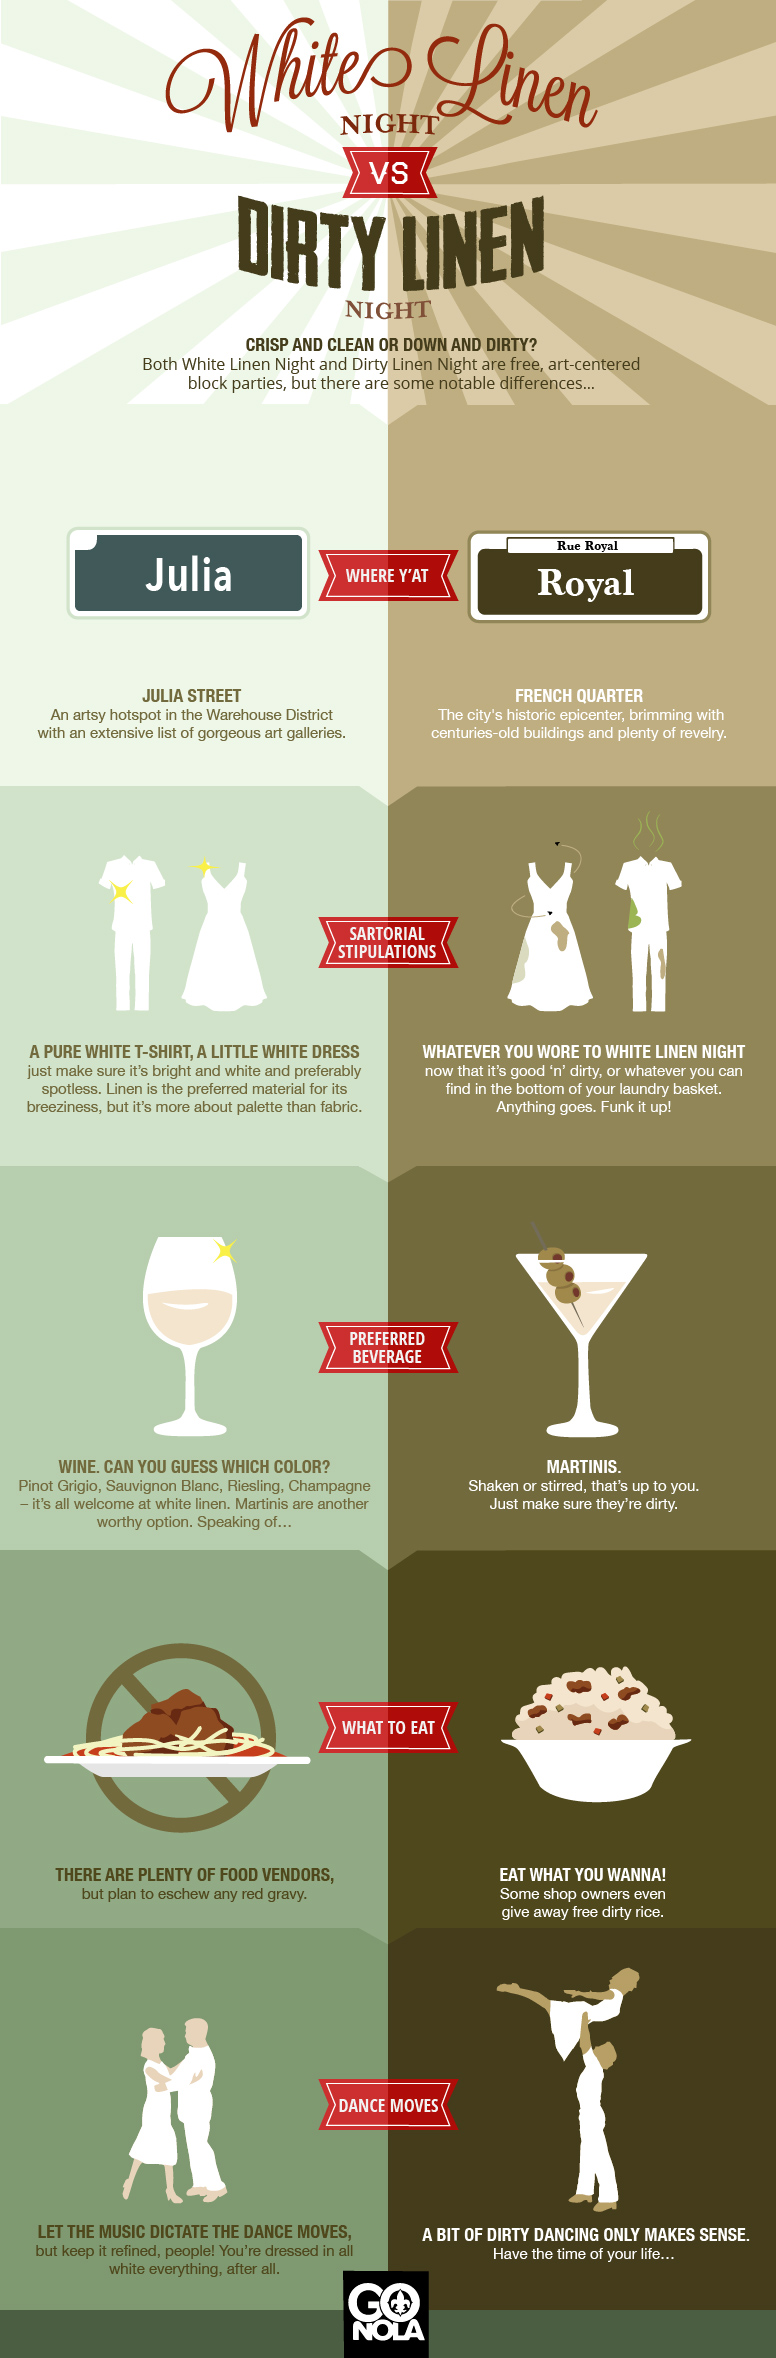 revised white-dirty linen infographic_7.17